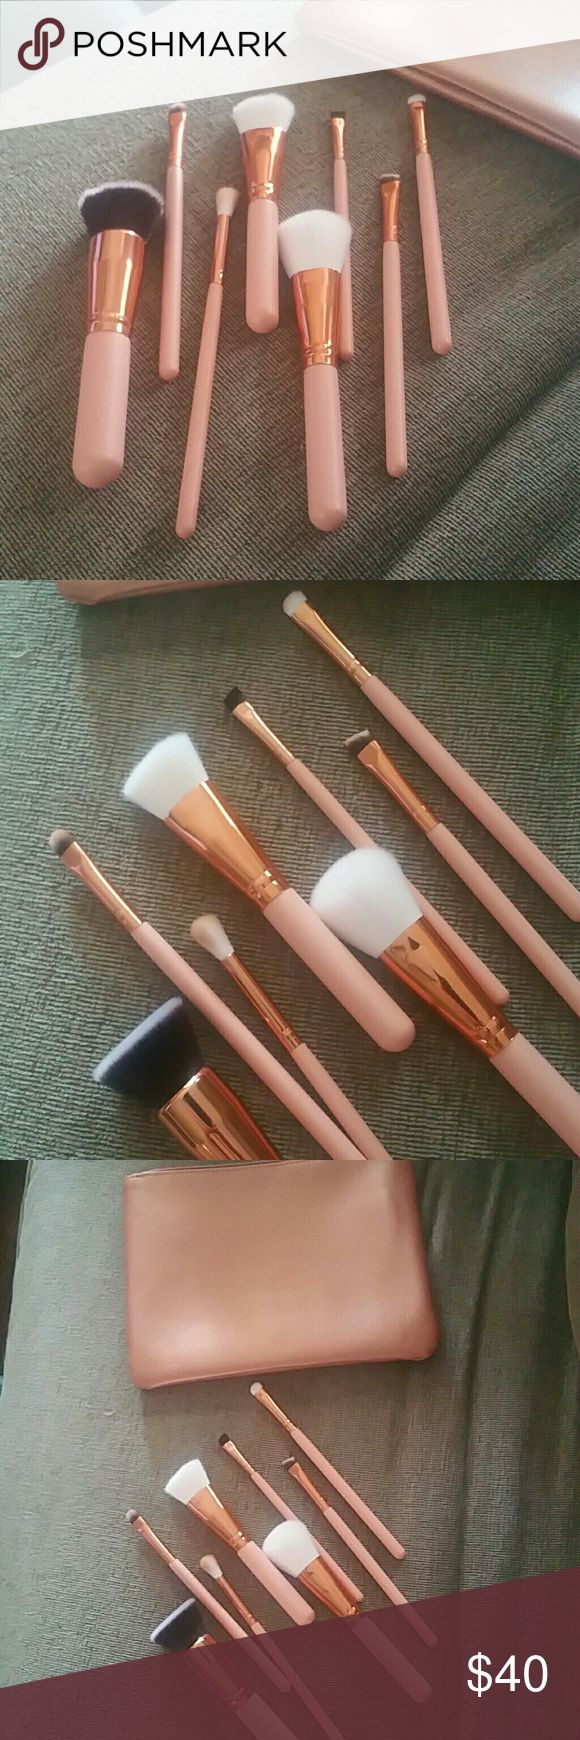 9 piece NWT brand new ultra soft bristle makeupSET 9 piece brush set high end professional brushes feels like MAC 8 brushes and matching bag to carry them NEW ultra soft great quality unique  Other